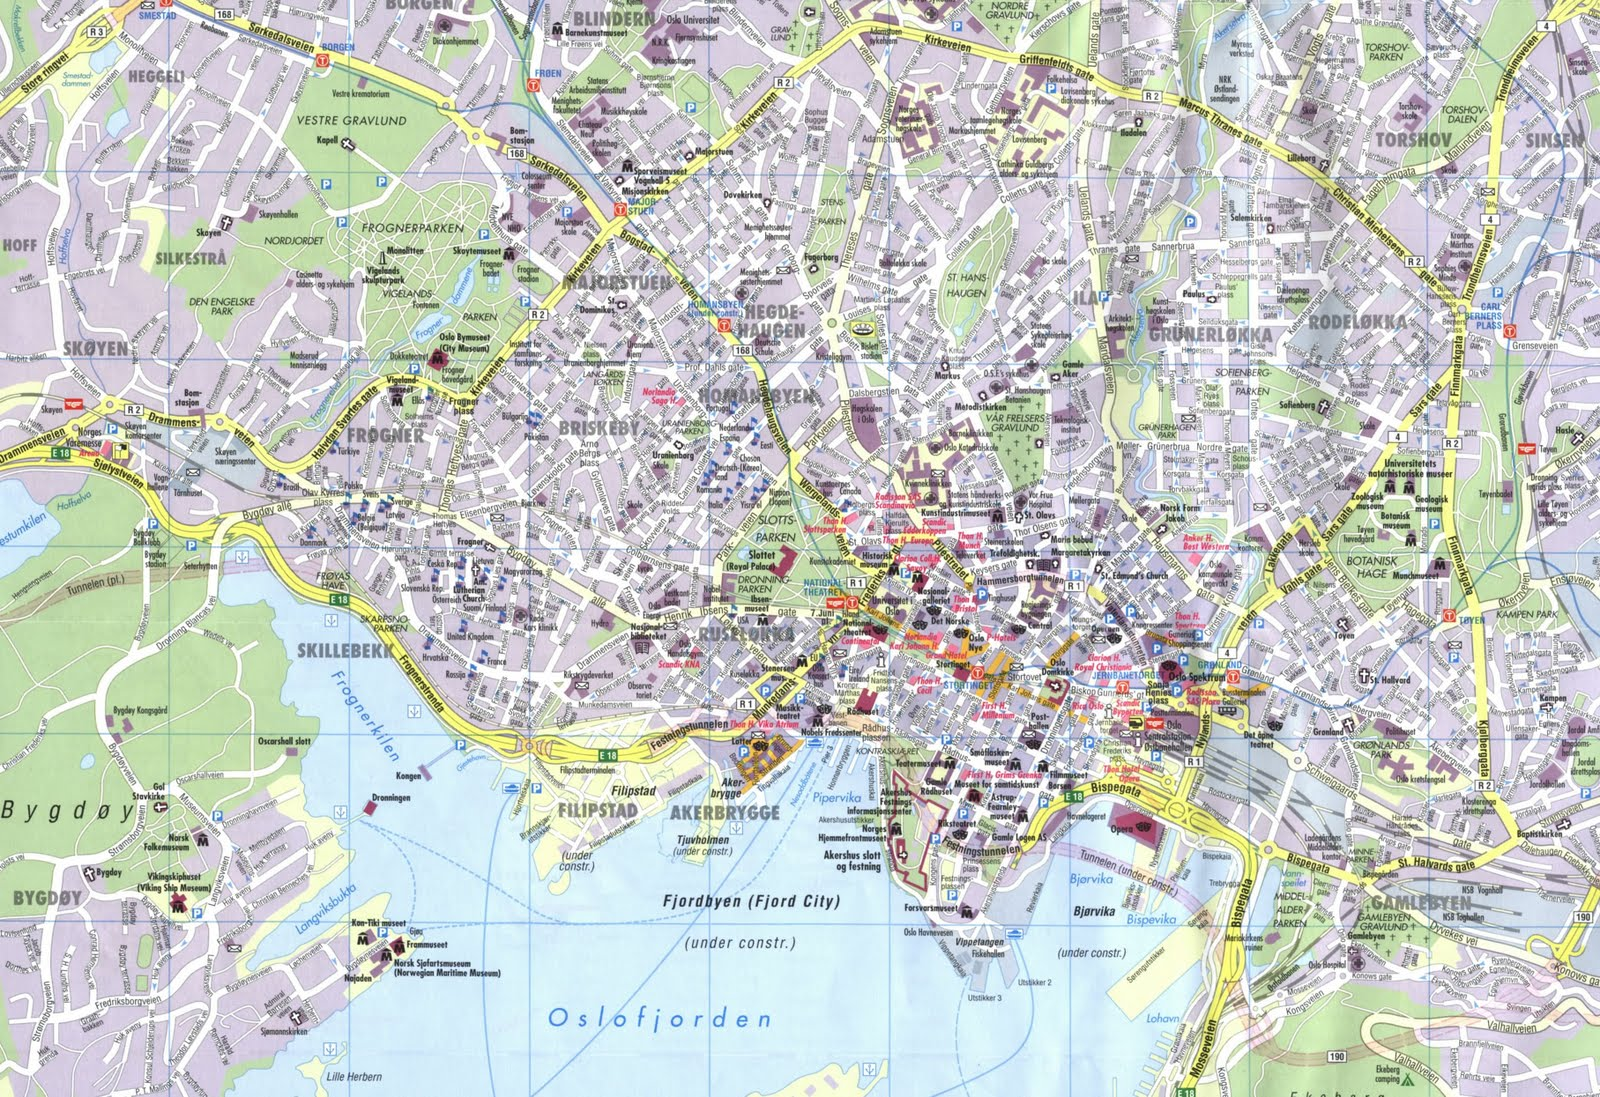 oslo city map tourist oslo norway blog about interesting places